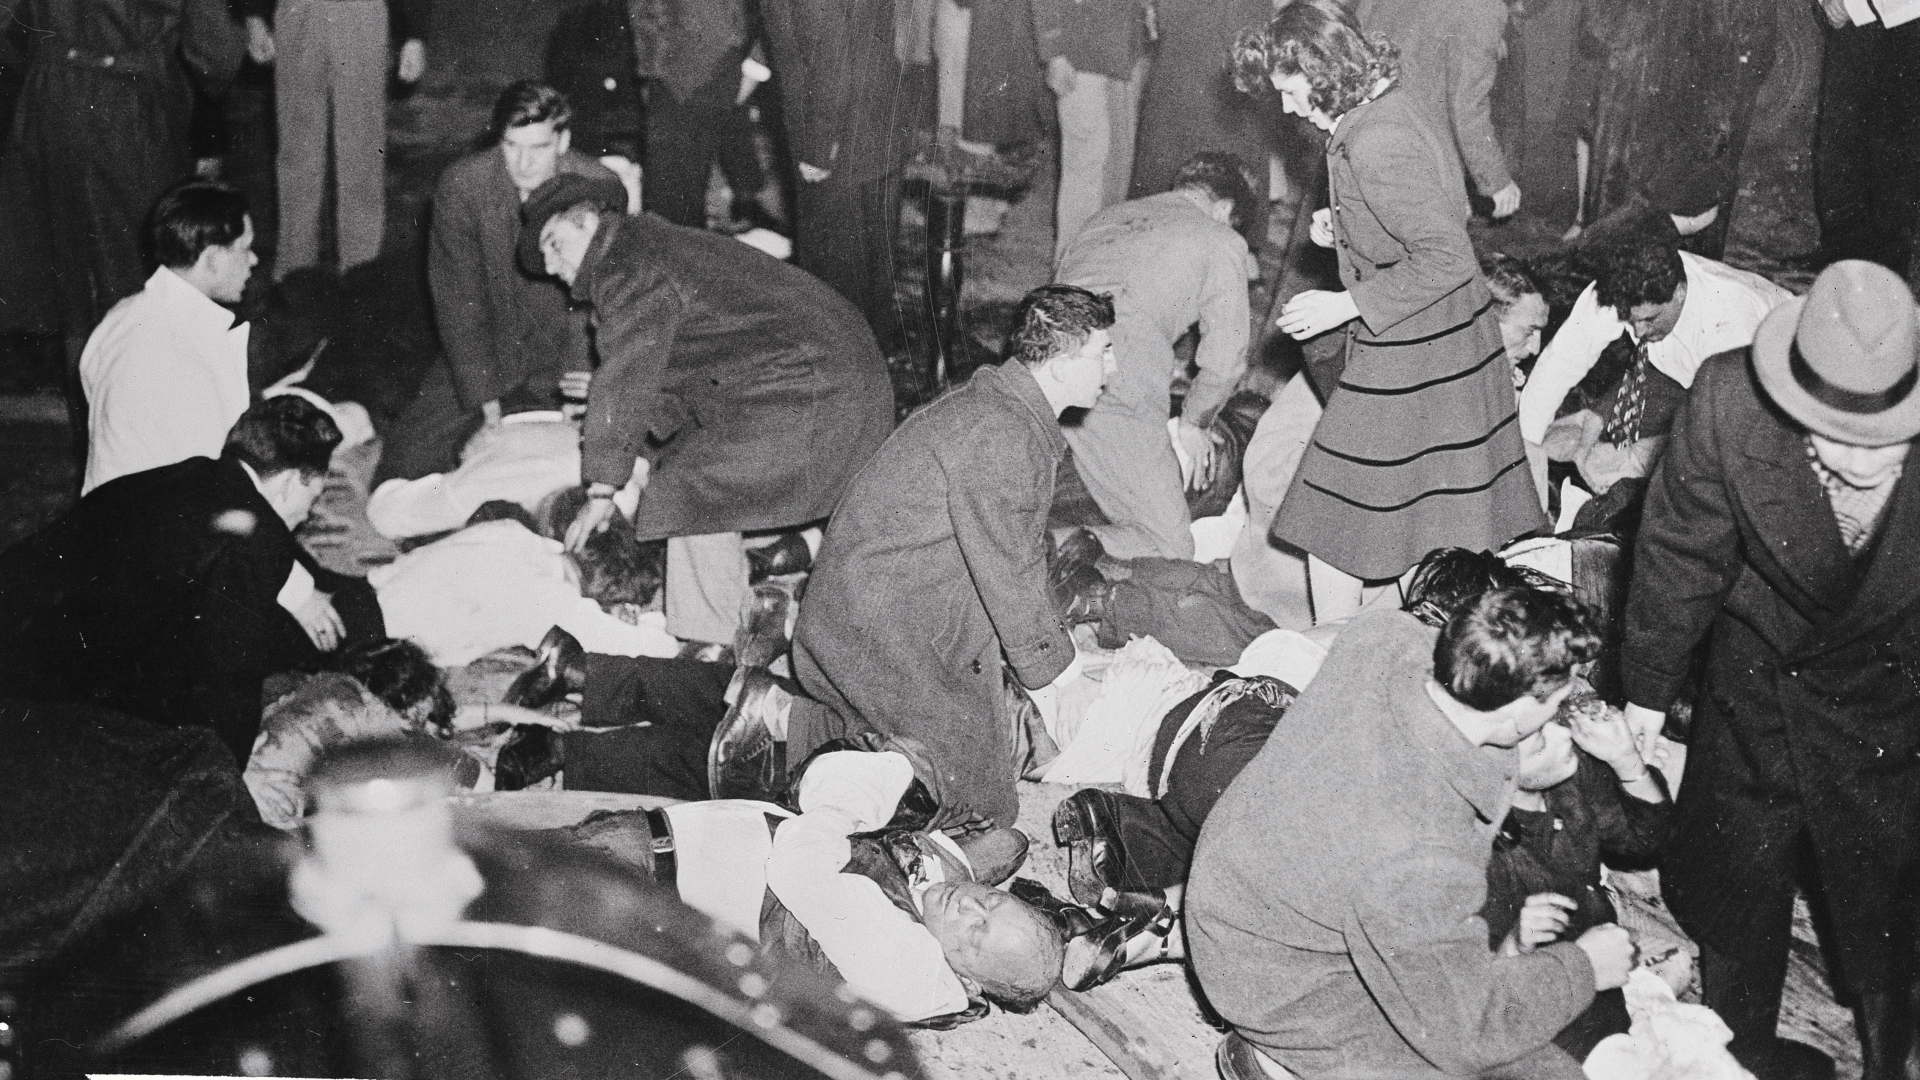 Dead, dying and injured outside the Cocoanut Grove while civilians and doctors administer aid after the fire. (Credit: Bettmann Archive/CORBIS/Getty Images)